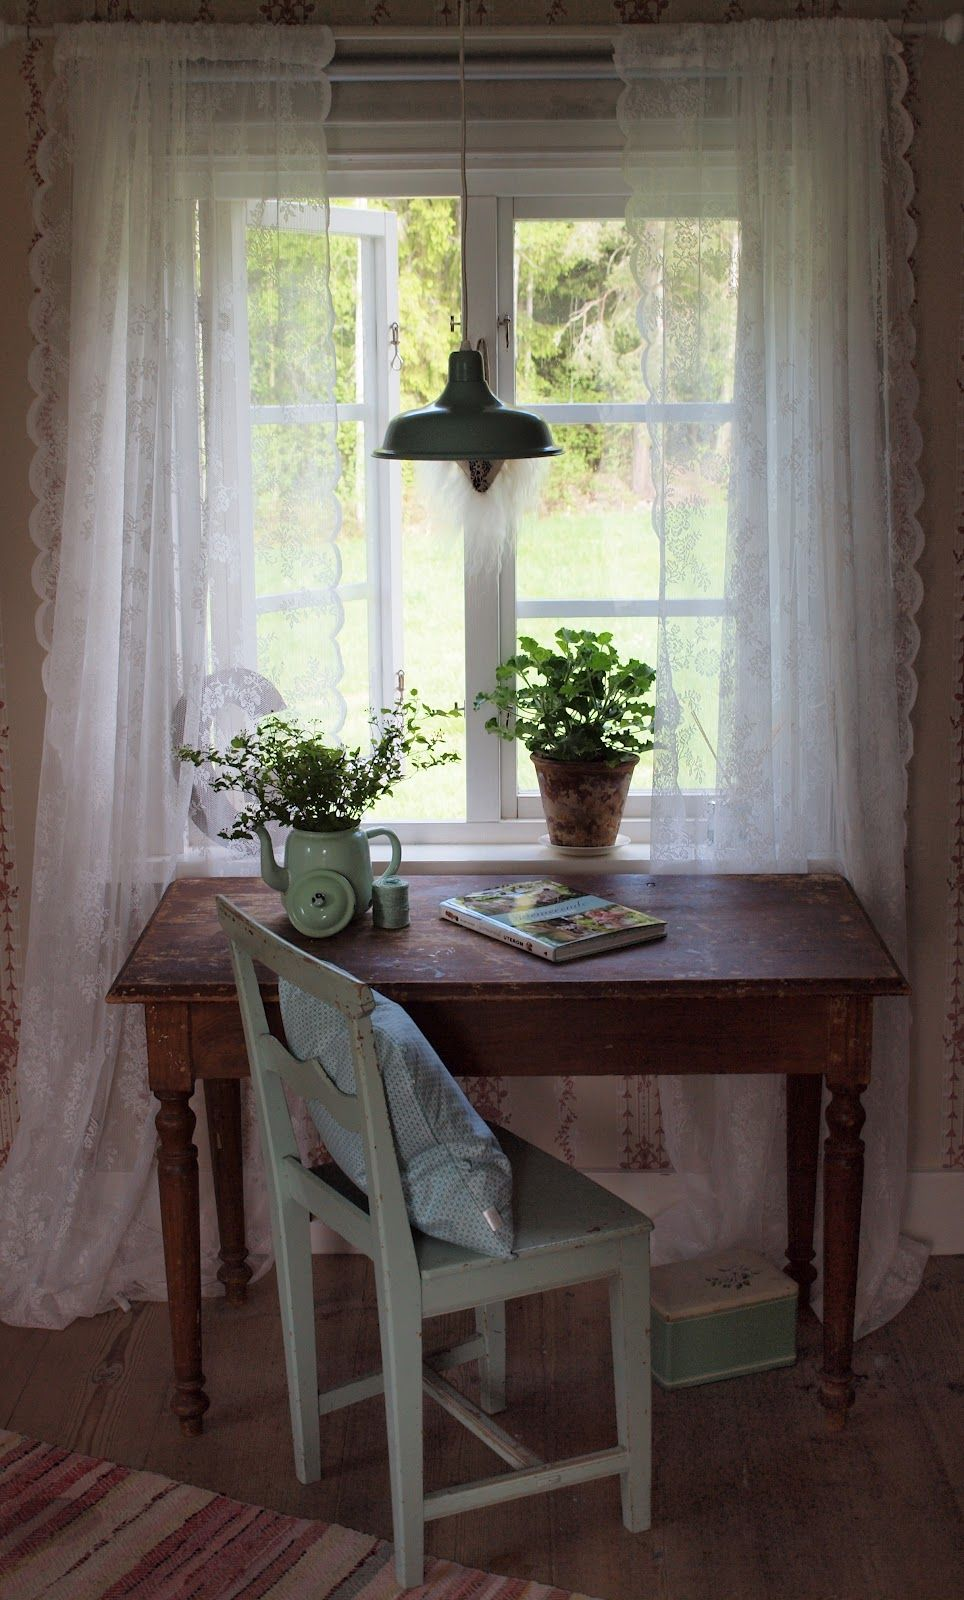 A Writing Table Next To Window Looking Out Onto Garden